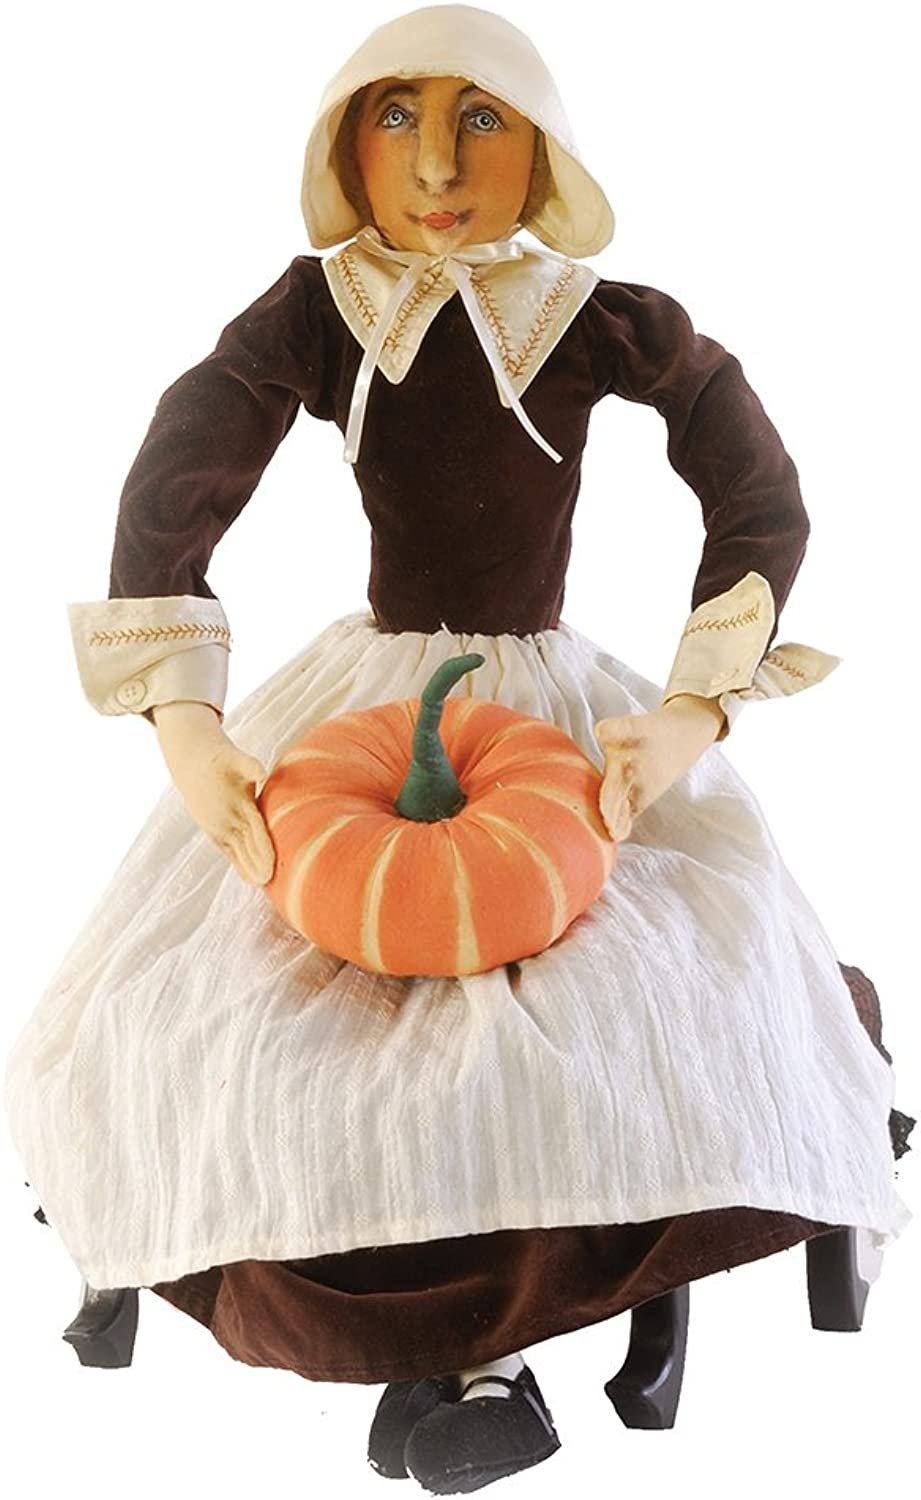 Gallerie II Gathered Traditions Prudence Pilgrim Collectible Figurine, Brown